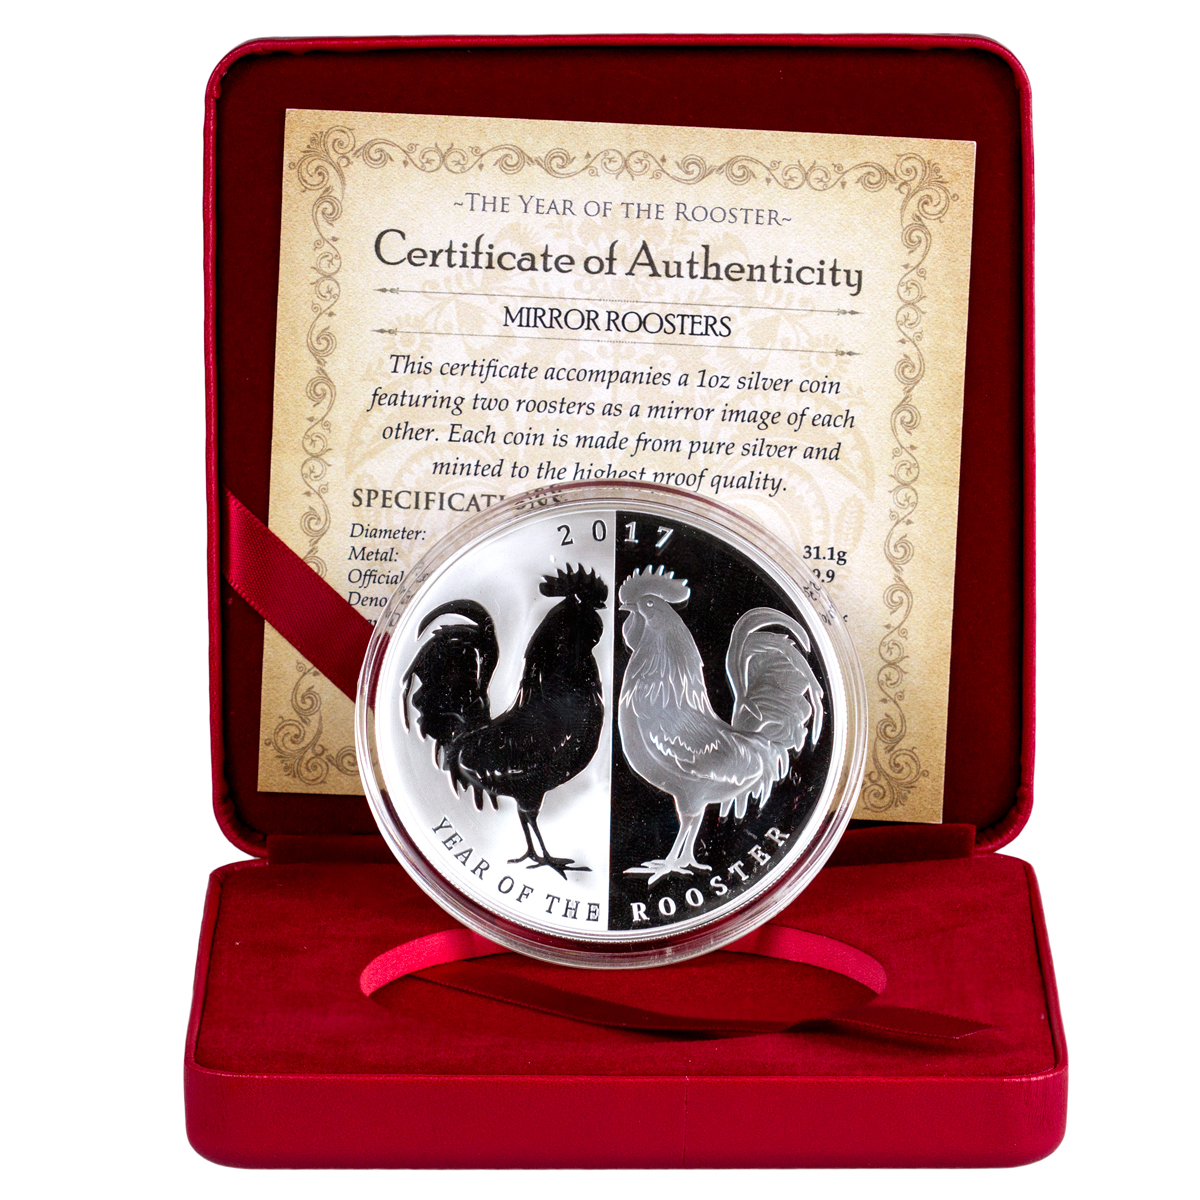 2017 Tokelau Year of the Rooster - Mirror Roosters 1 oz Silver Lunar Proof $5 Coin GEM Proof OGP